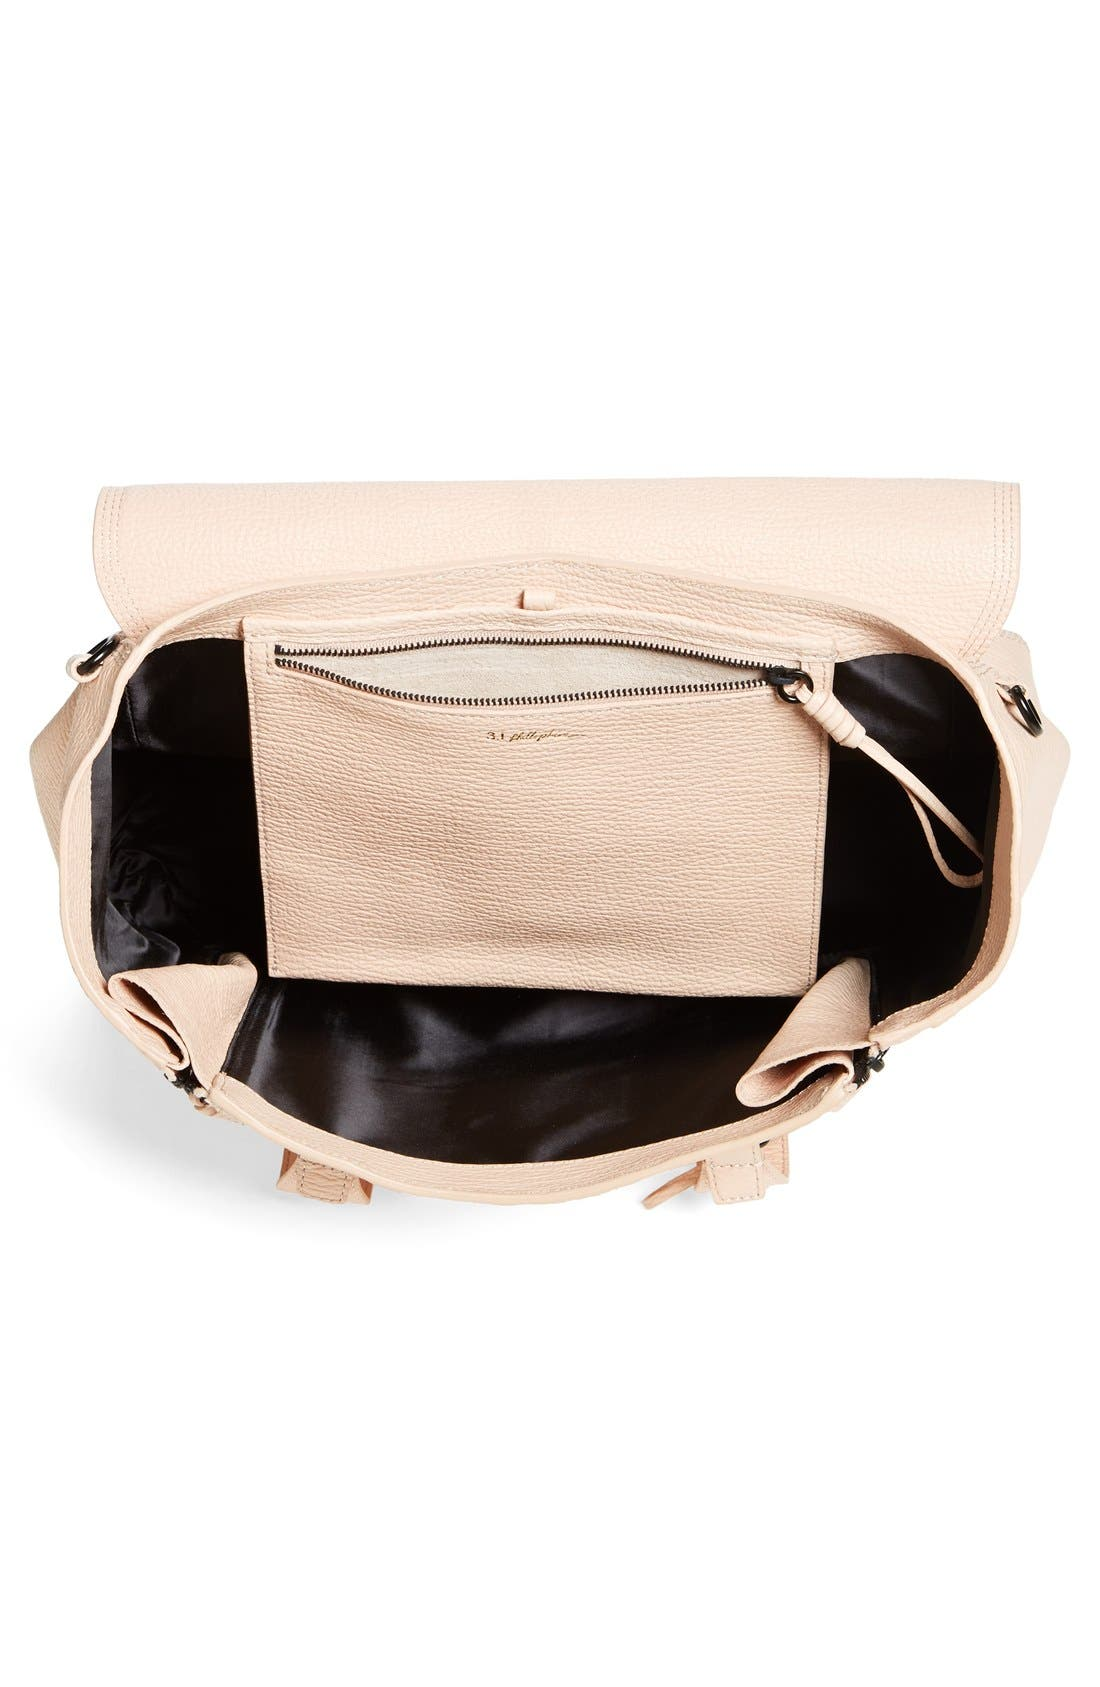 Alternate Image 3  - 3.1 Phillip Lim 'Pashli' Leather Crossbody Satchel